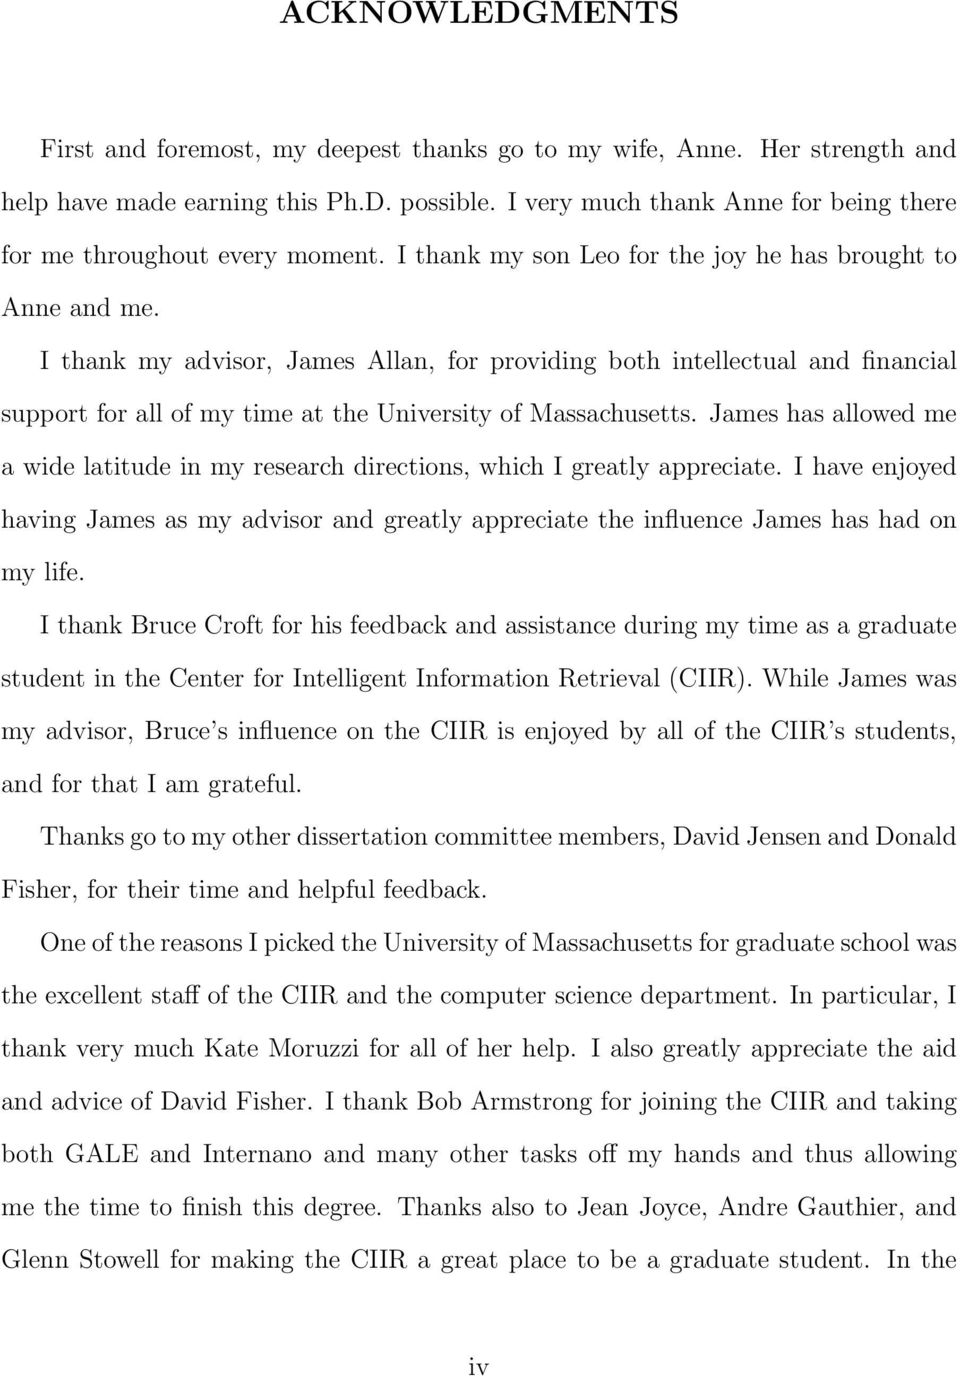 I thank my advisor, James Allan, for providing both intellectual and financial support for all of my time at the University of Massachusetts.